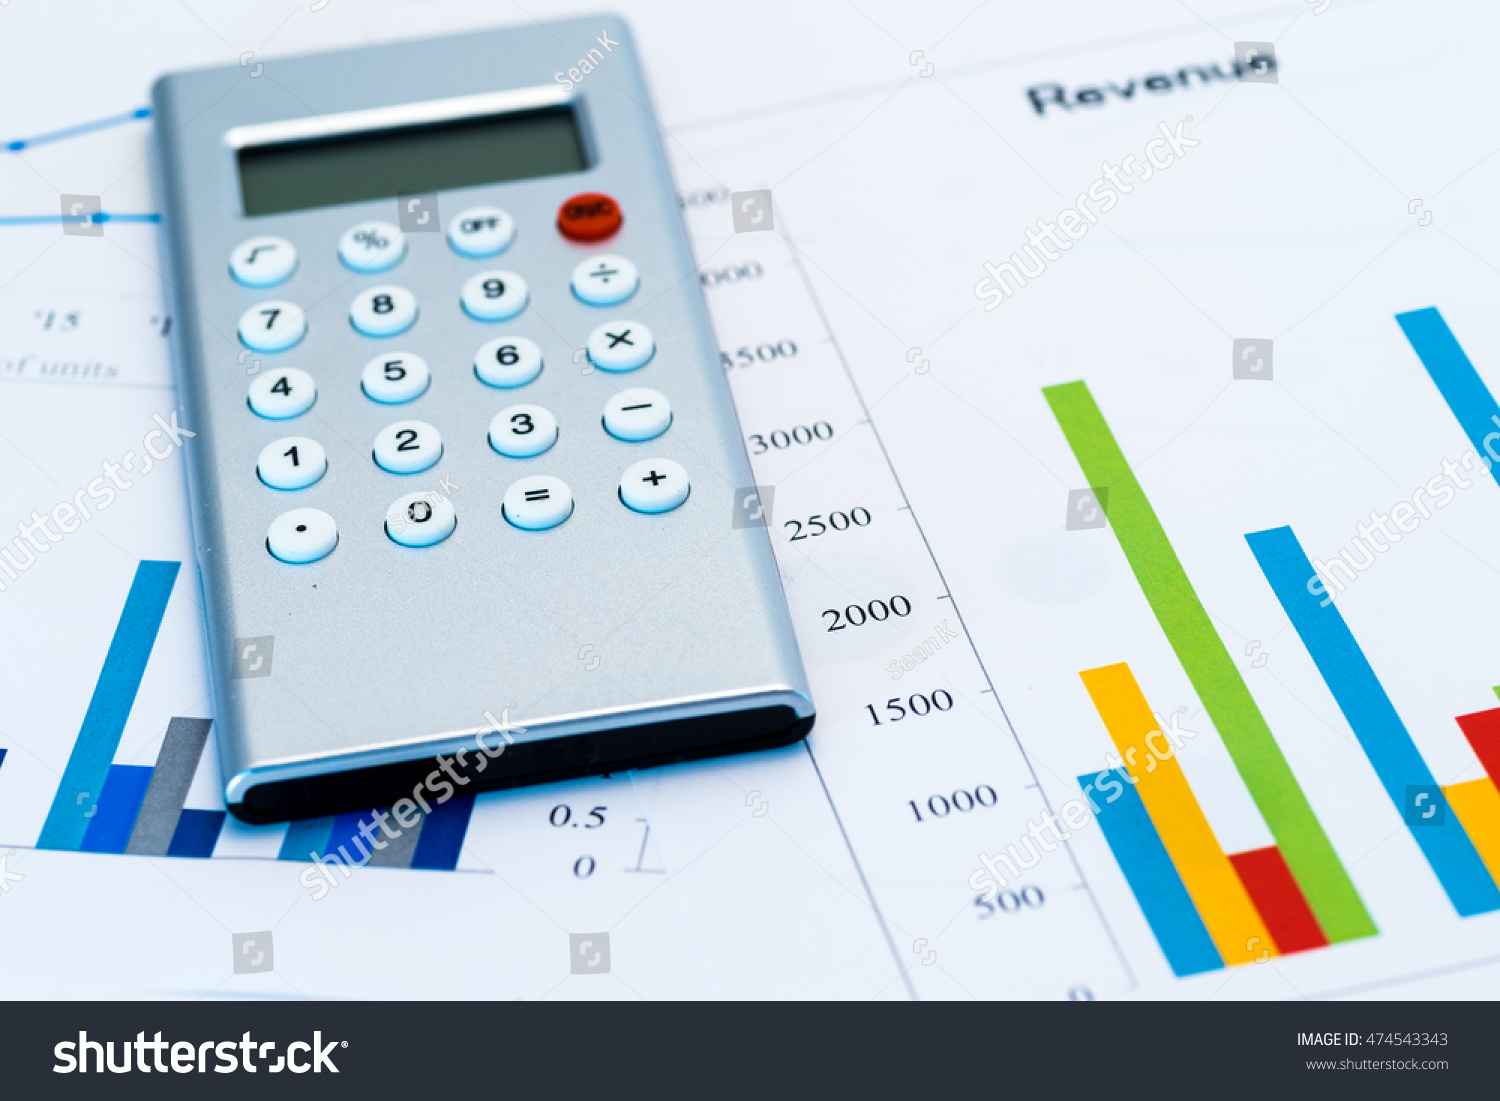 Colorful bar chart calculator stock photo royalty free 474543343 colorful bar chart with calculator ccuart Gallery